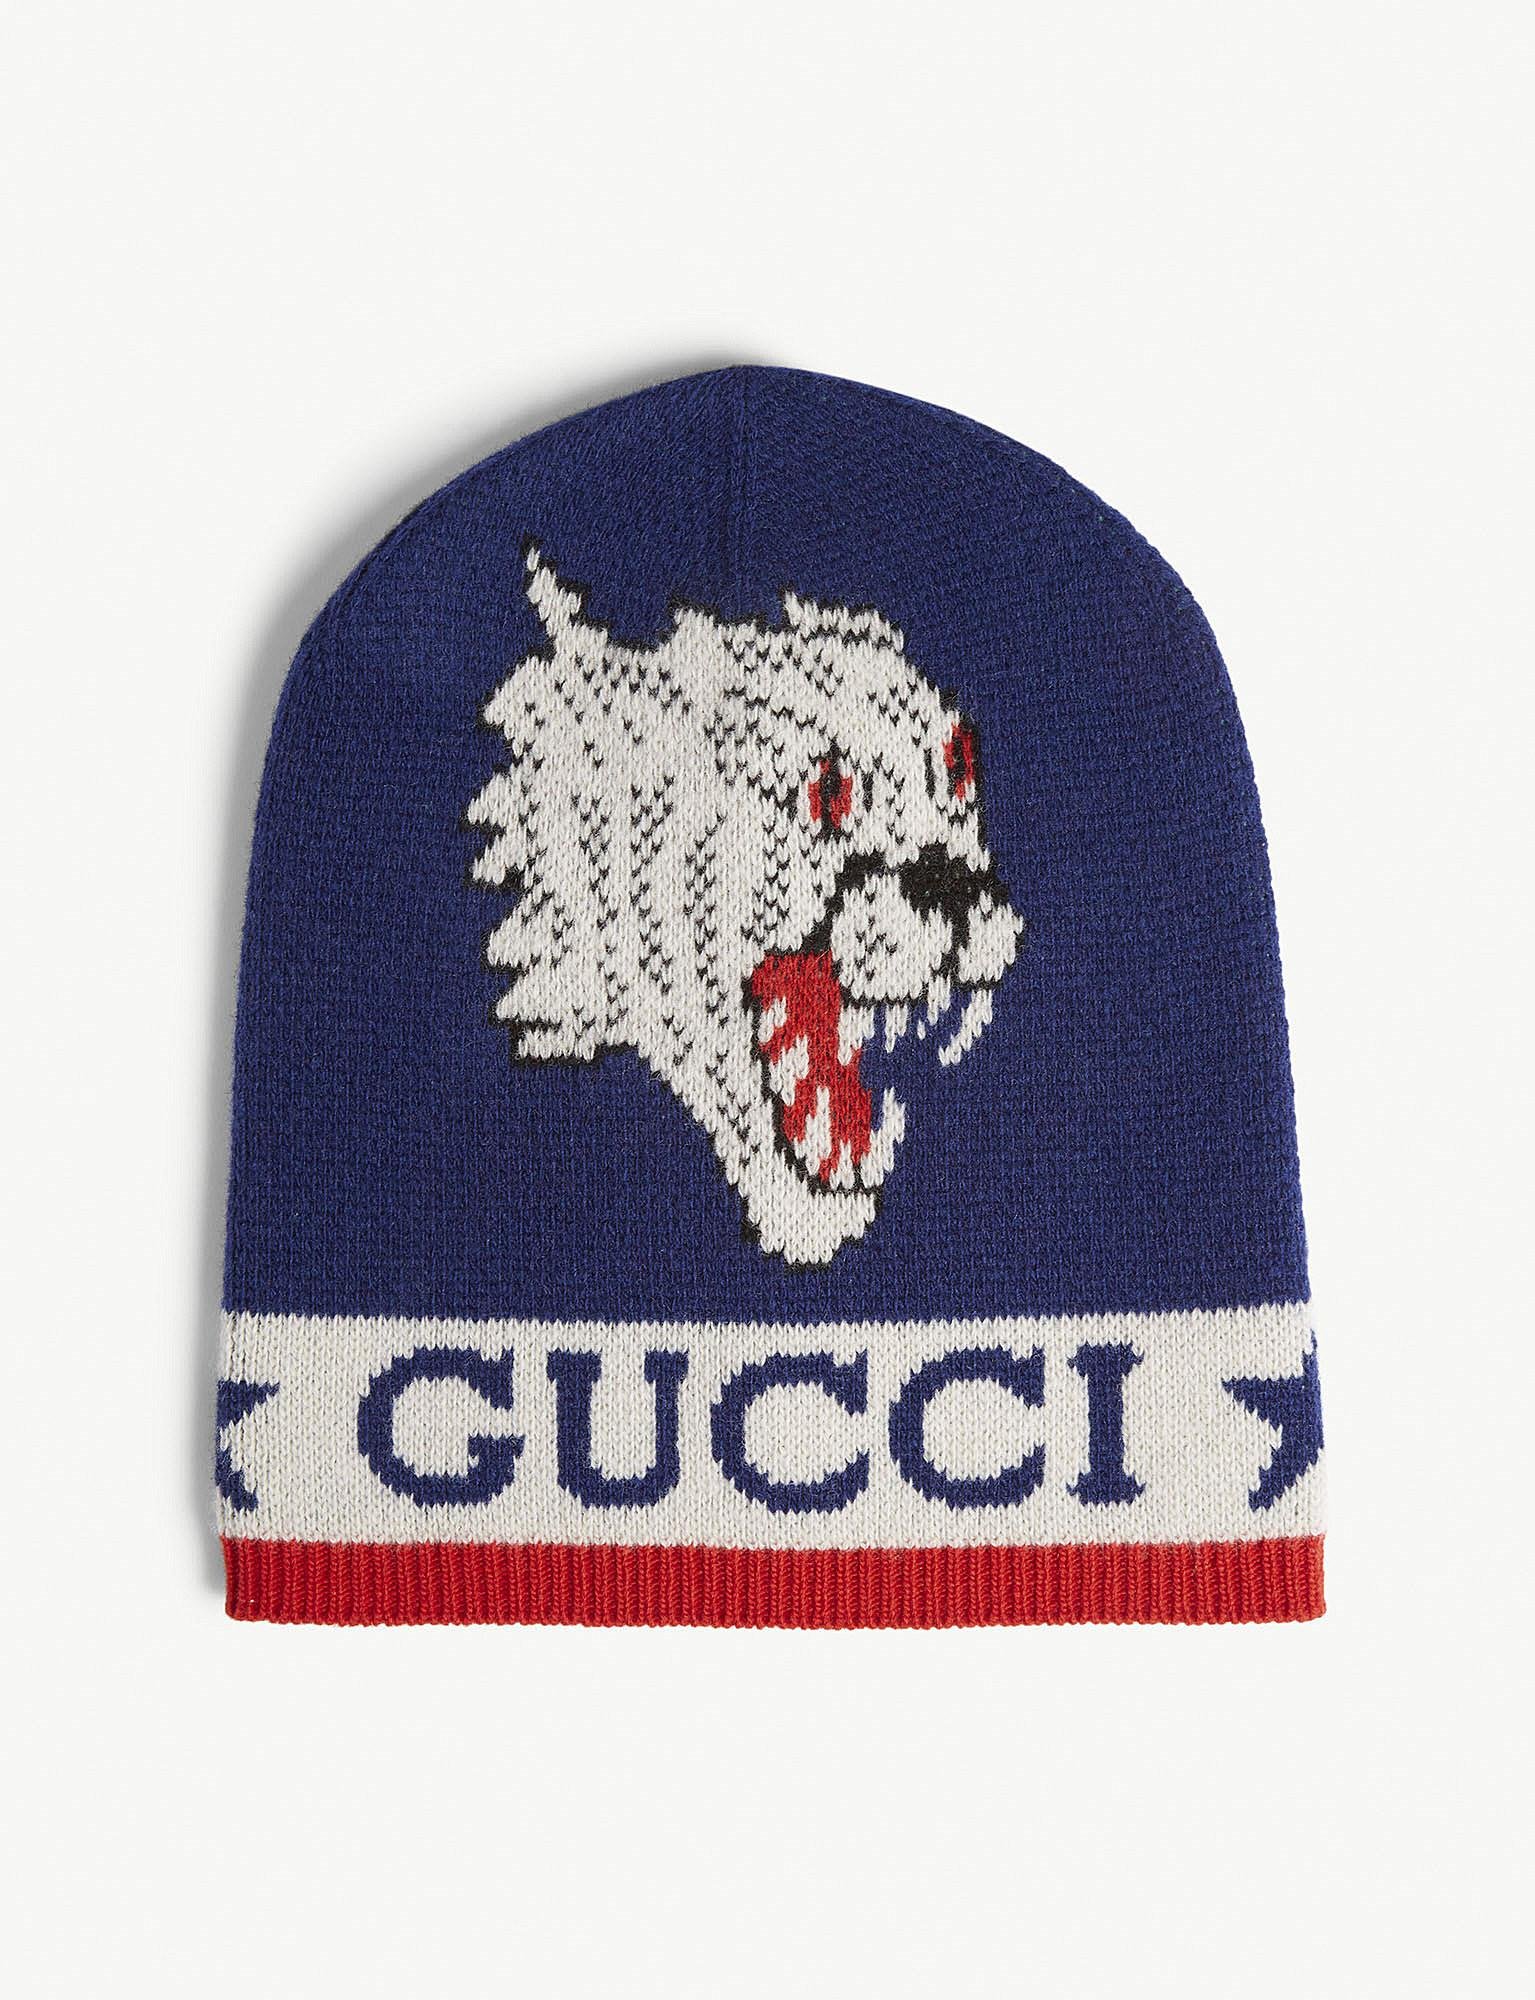 79bd429c973 Gucci - Blue Tiger Applique Knitted Wool Beanie for Men - Lyst. View  fullscreen